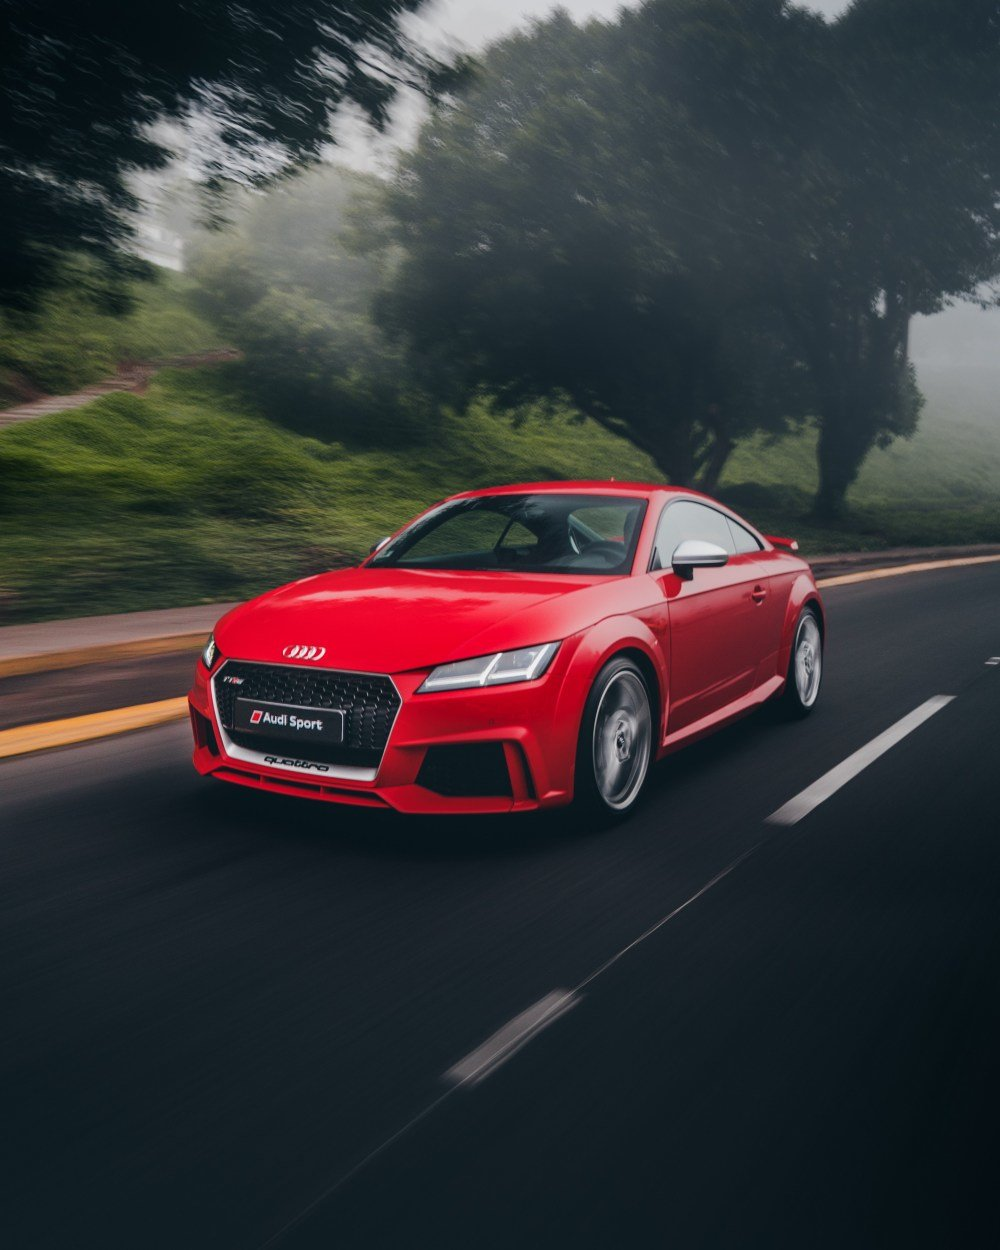 Latest Audi Pictures Download Free Images On Unsplash Free Download